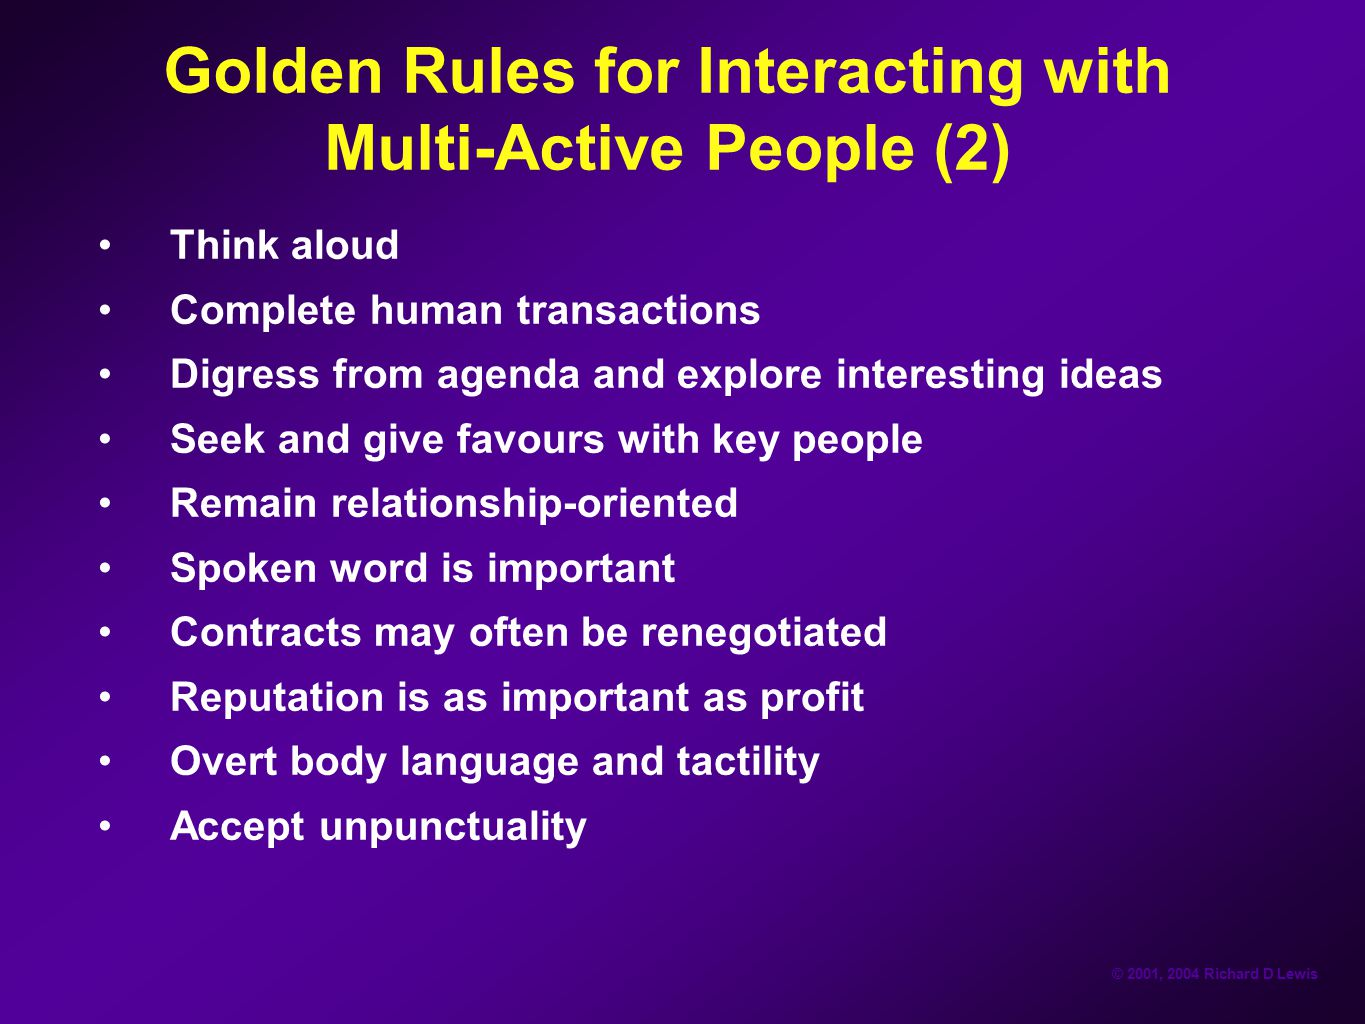 Golden Rules for Interacting with Multi-Active People (2)